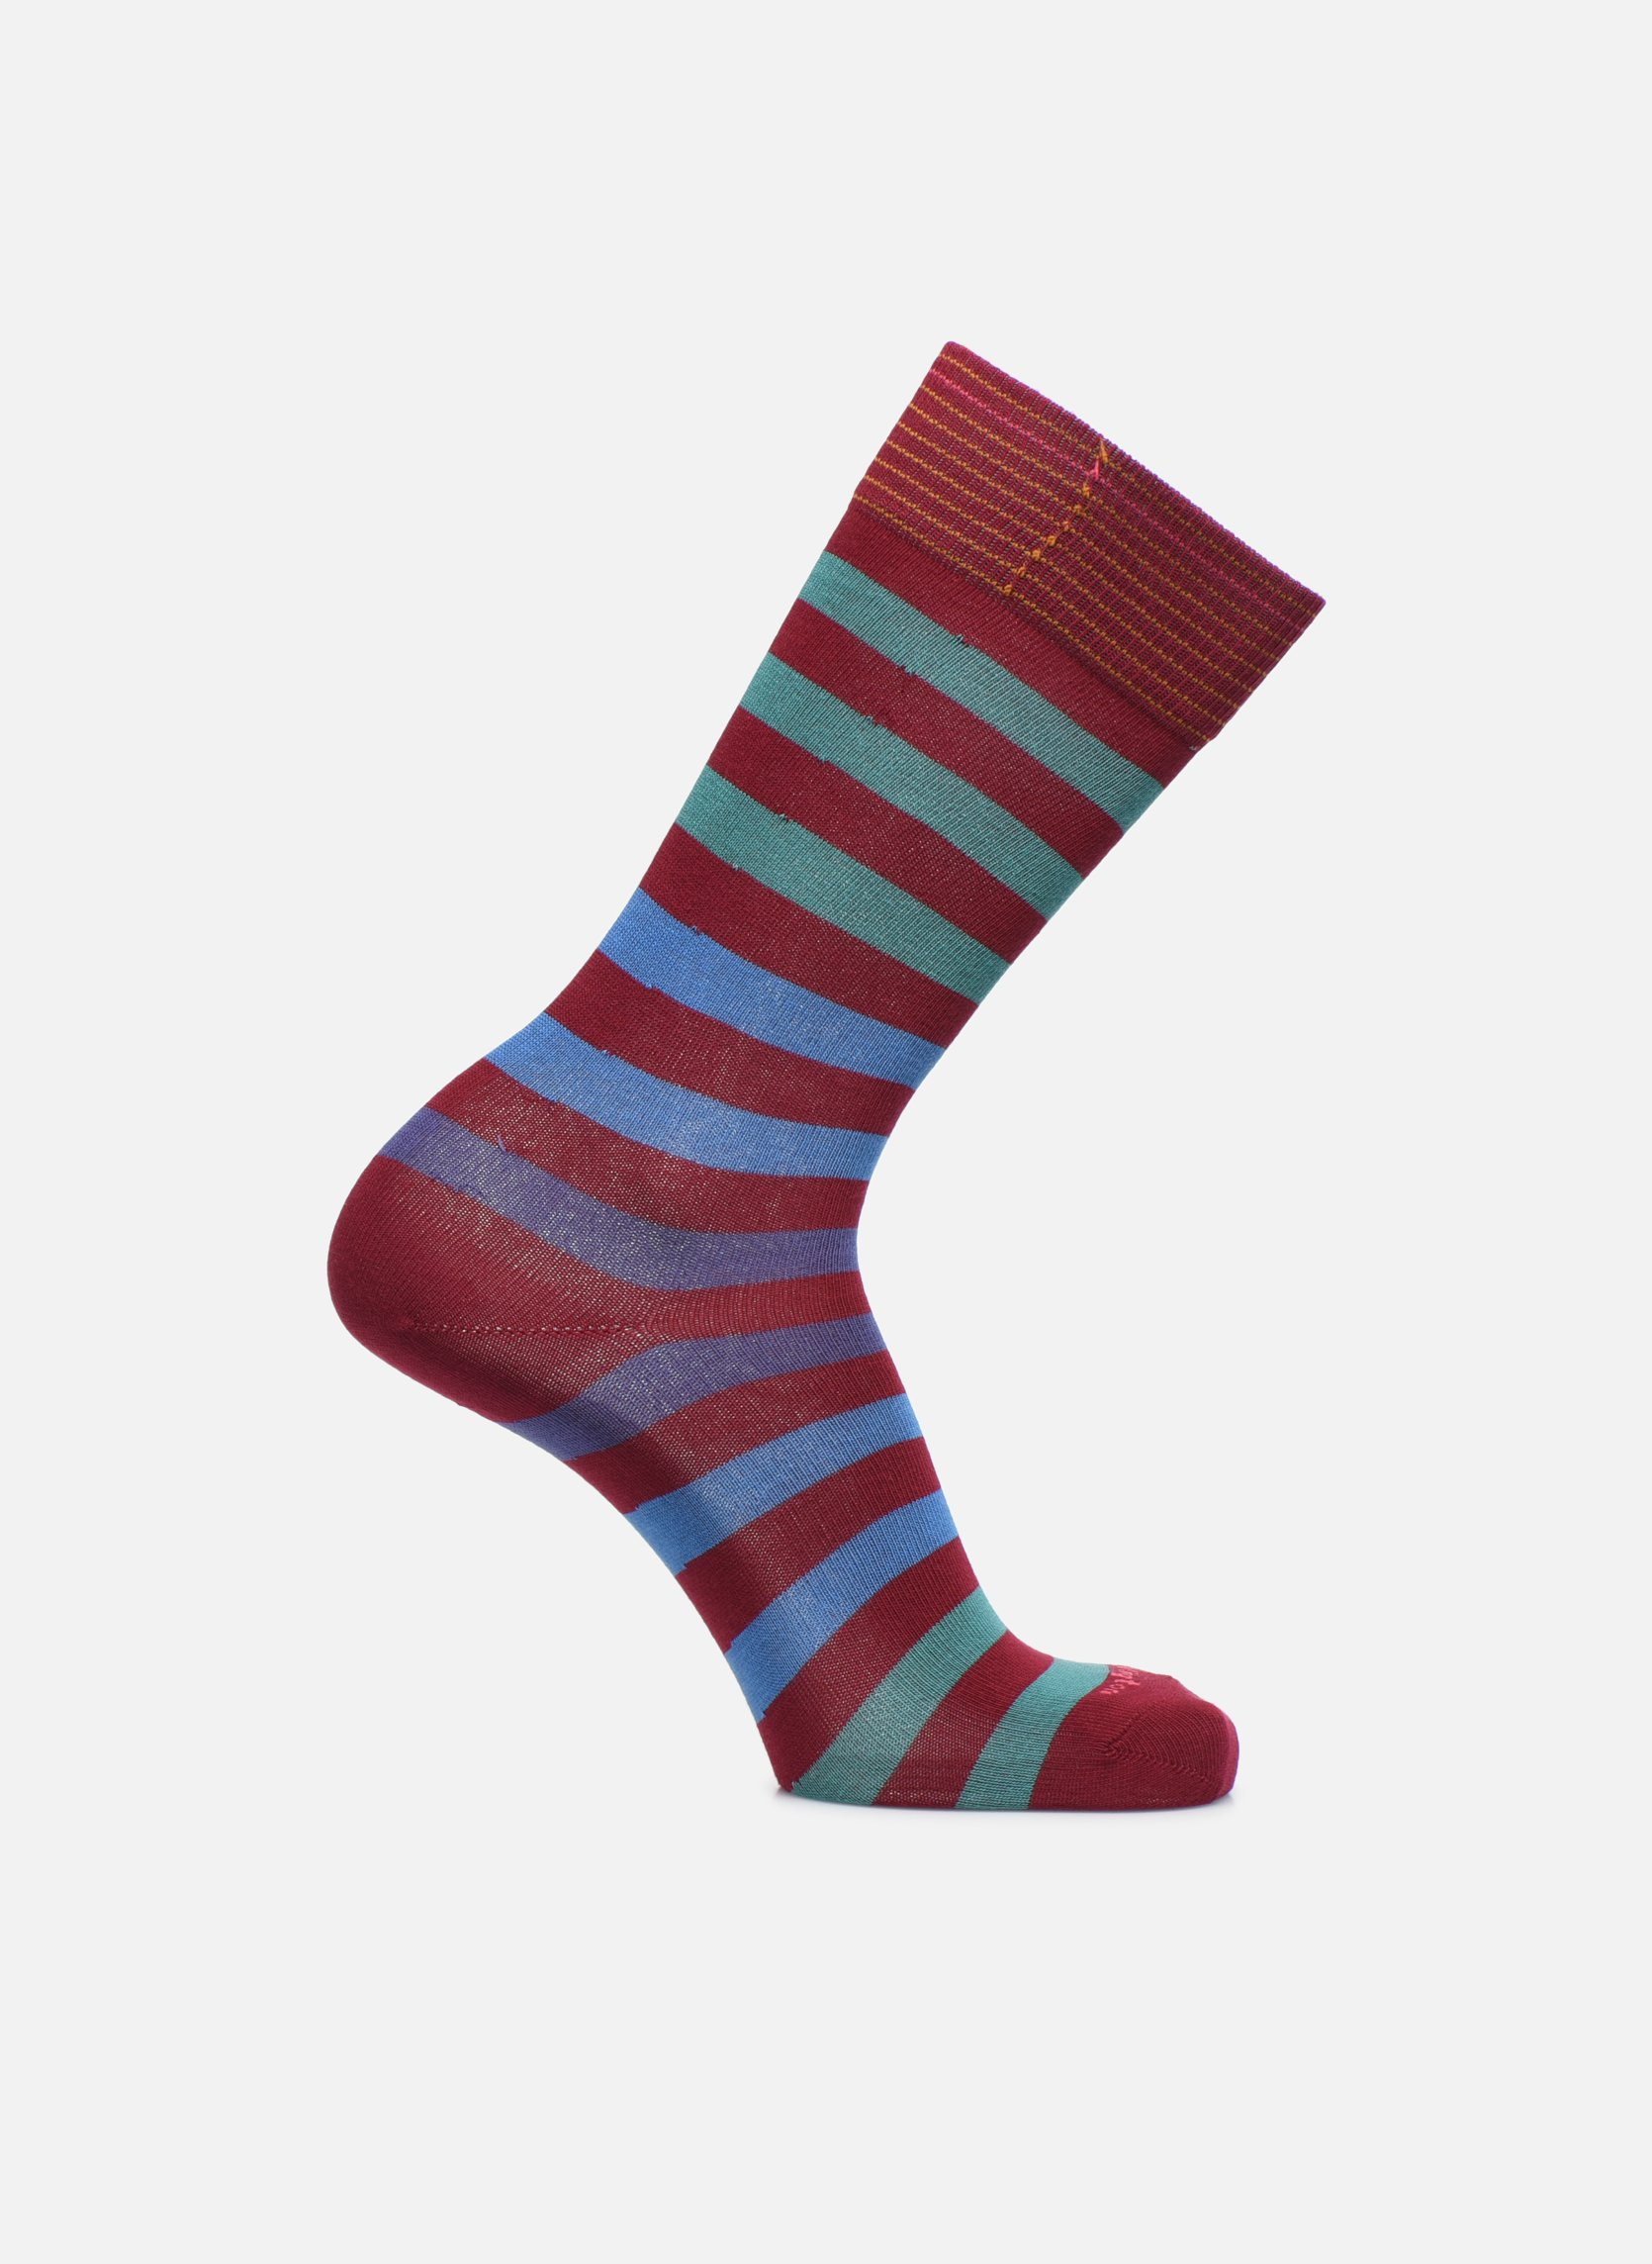 Chaussettes RAYEES 8370marron